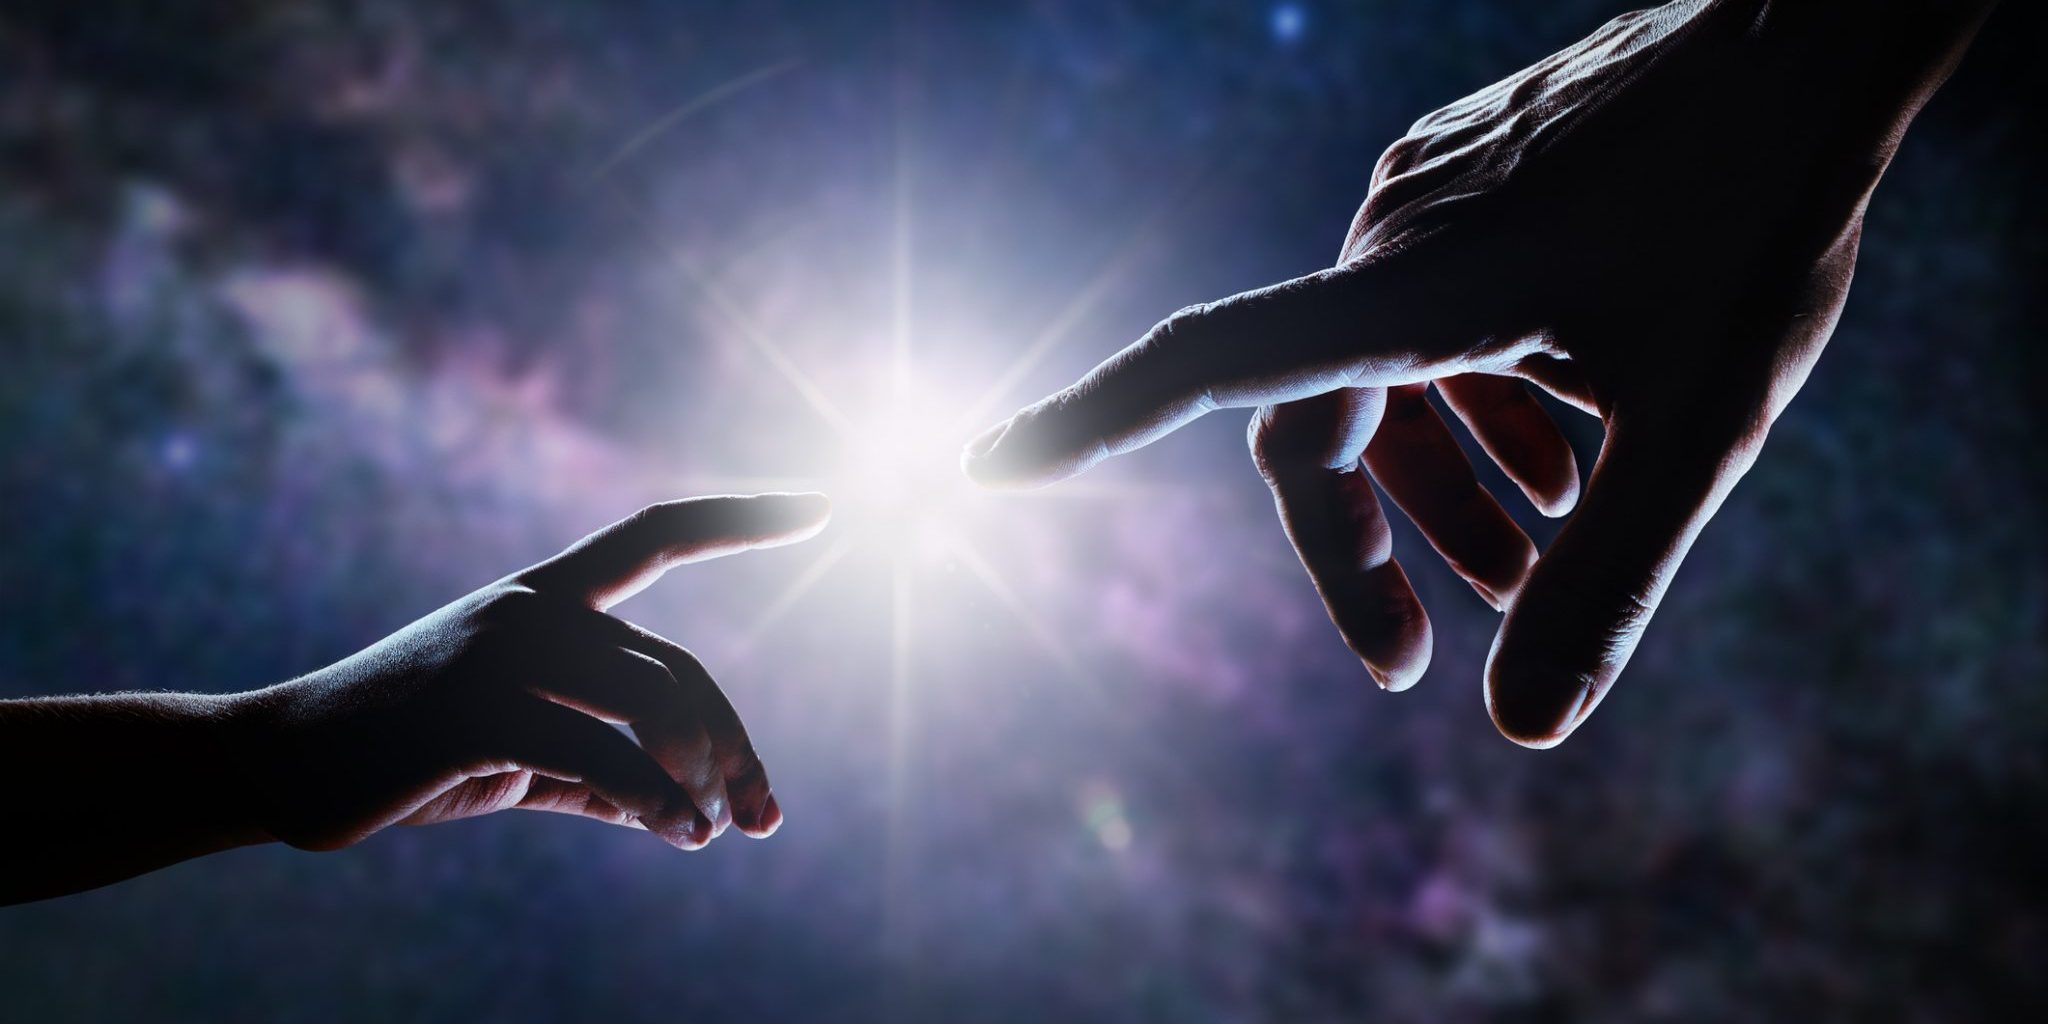 Close up of two hands, adult's and child's, reaching each other like Michelangelo's painting in front of stars and galaxy. Light is shining between father's and son's fingers. High contrast, lens flare.